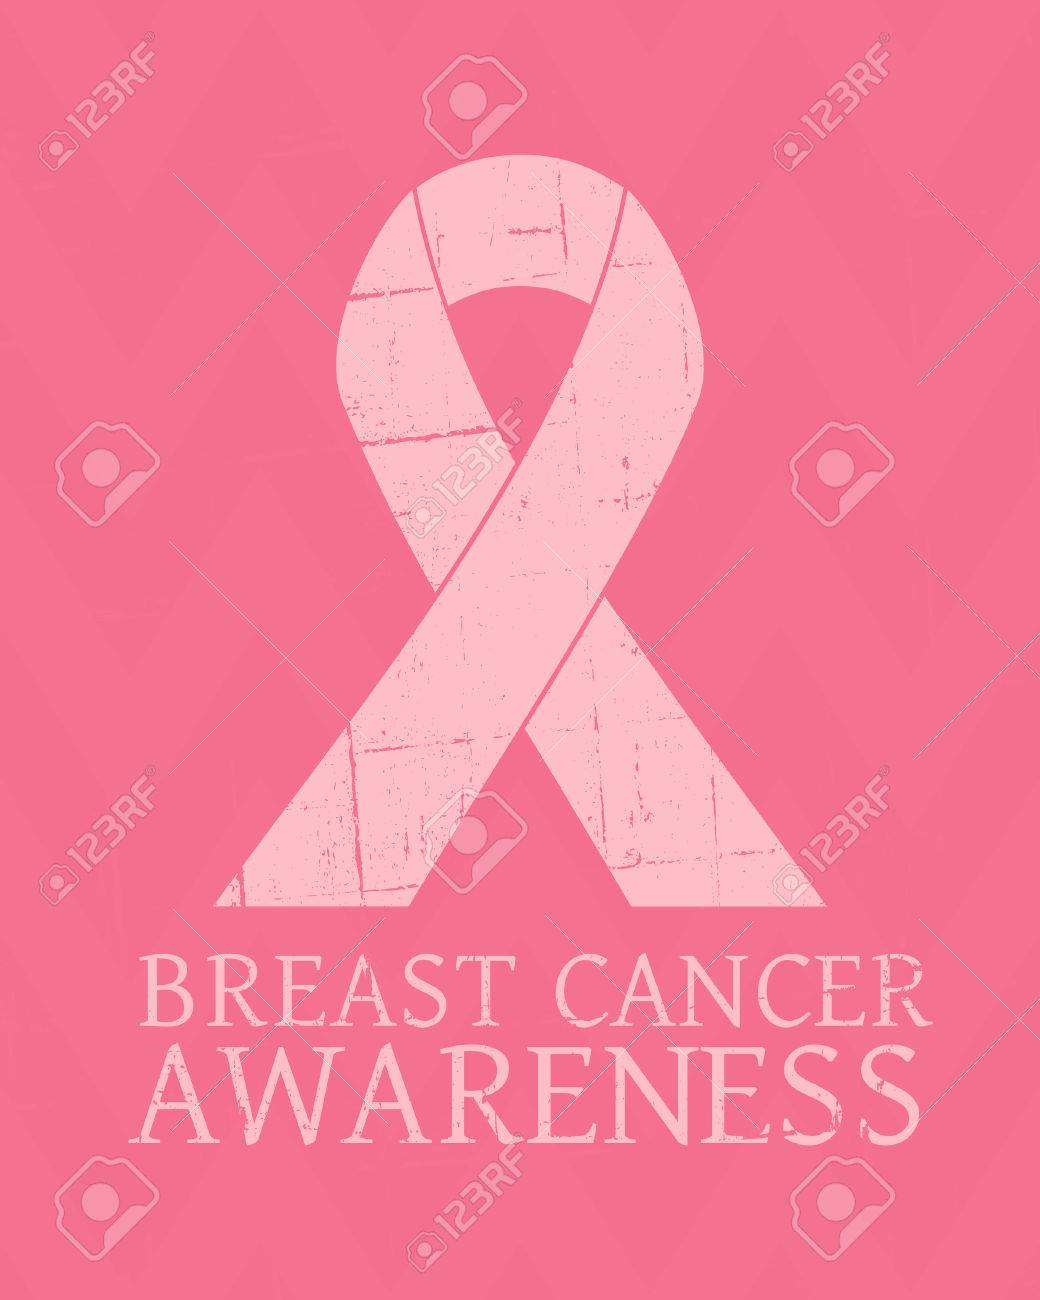 Vintage style Breast Cancer Awareness poster. Stock Vector - 22244696